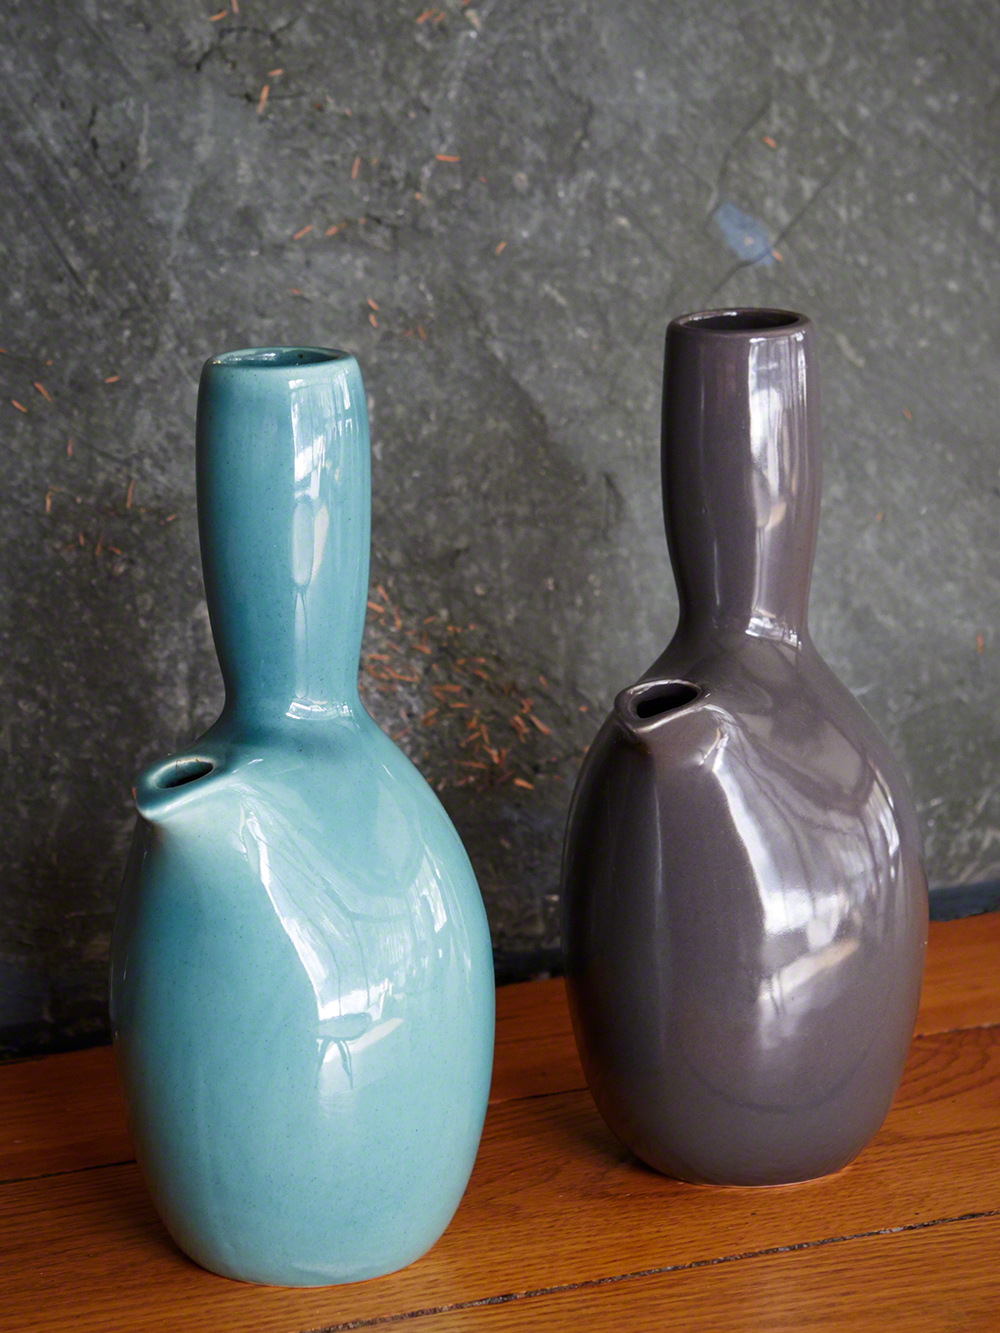 Iroquois Casual China carafes, turquoise and charcoal.